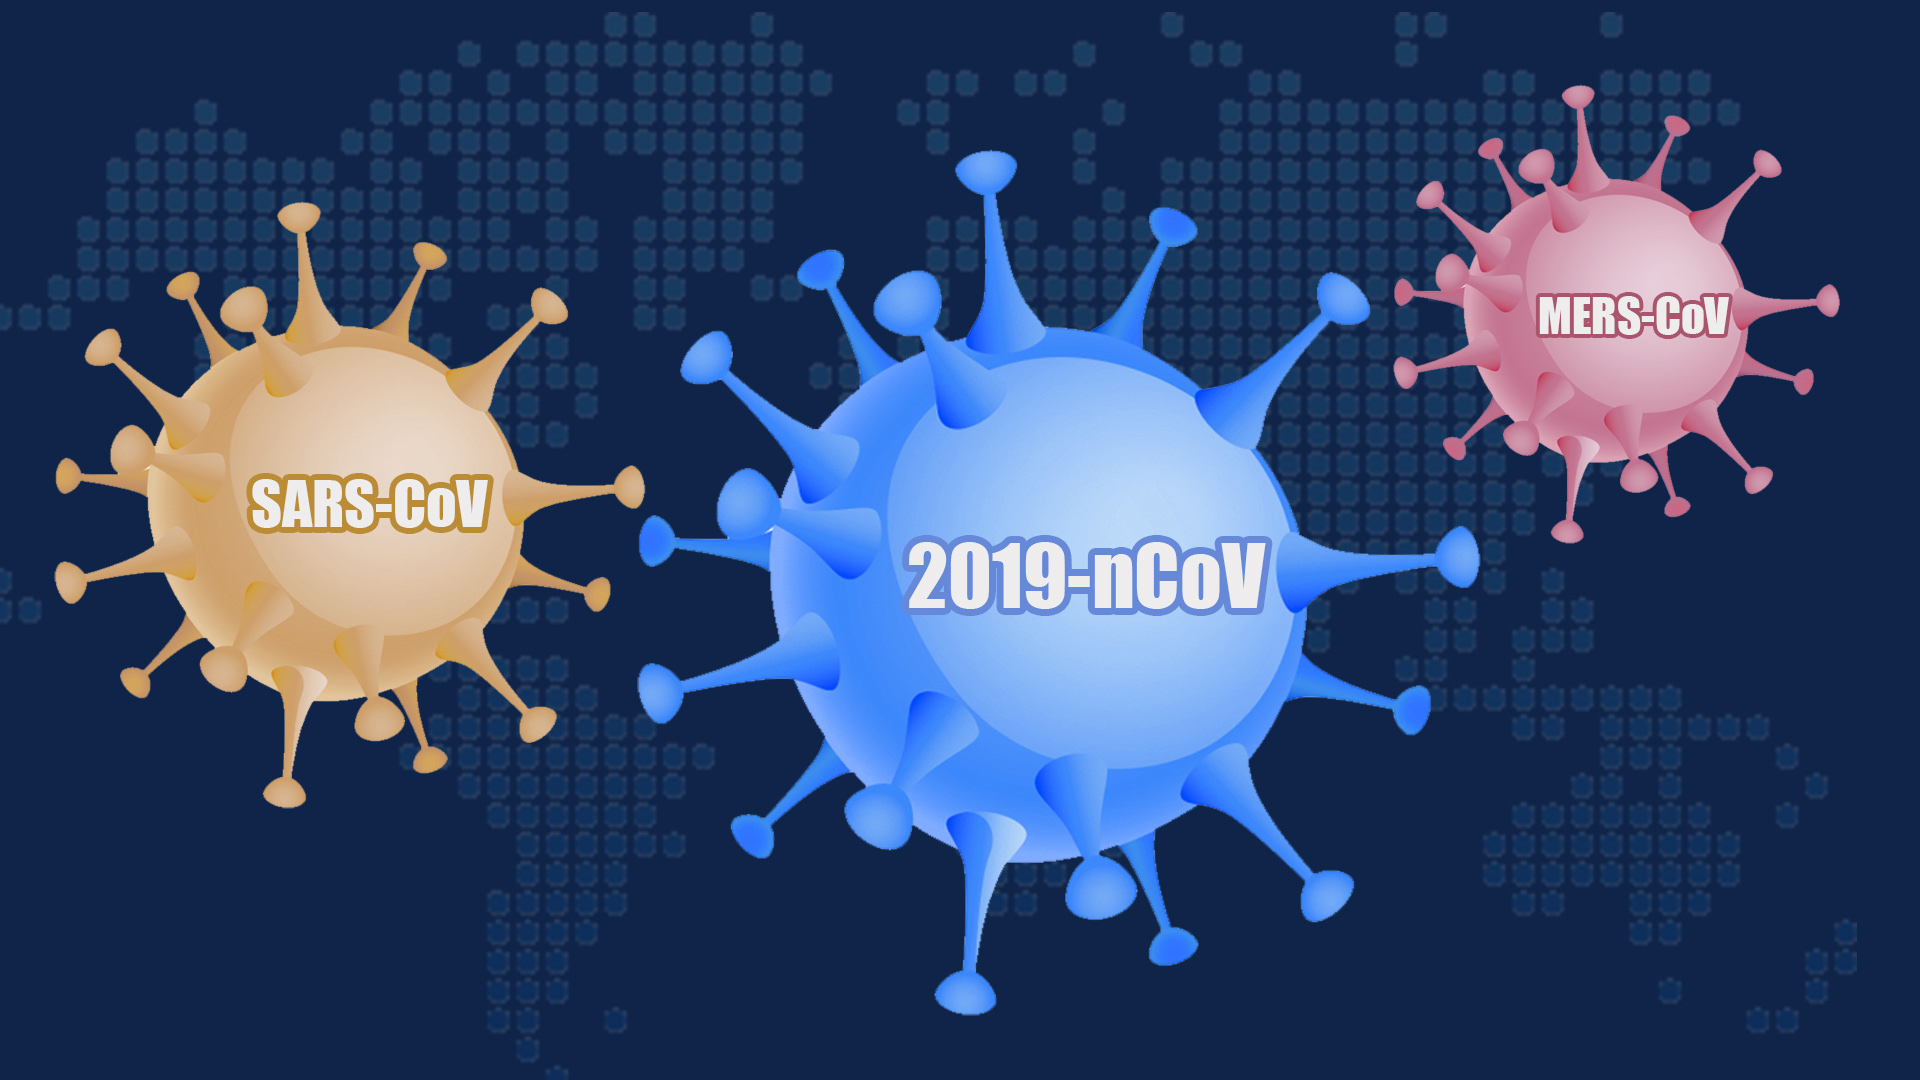 Graphics: All you need to know about the coronaviruses - CGTN